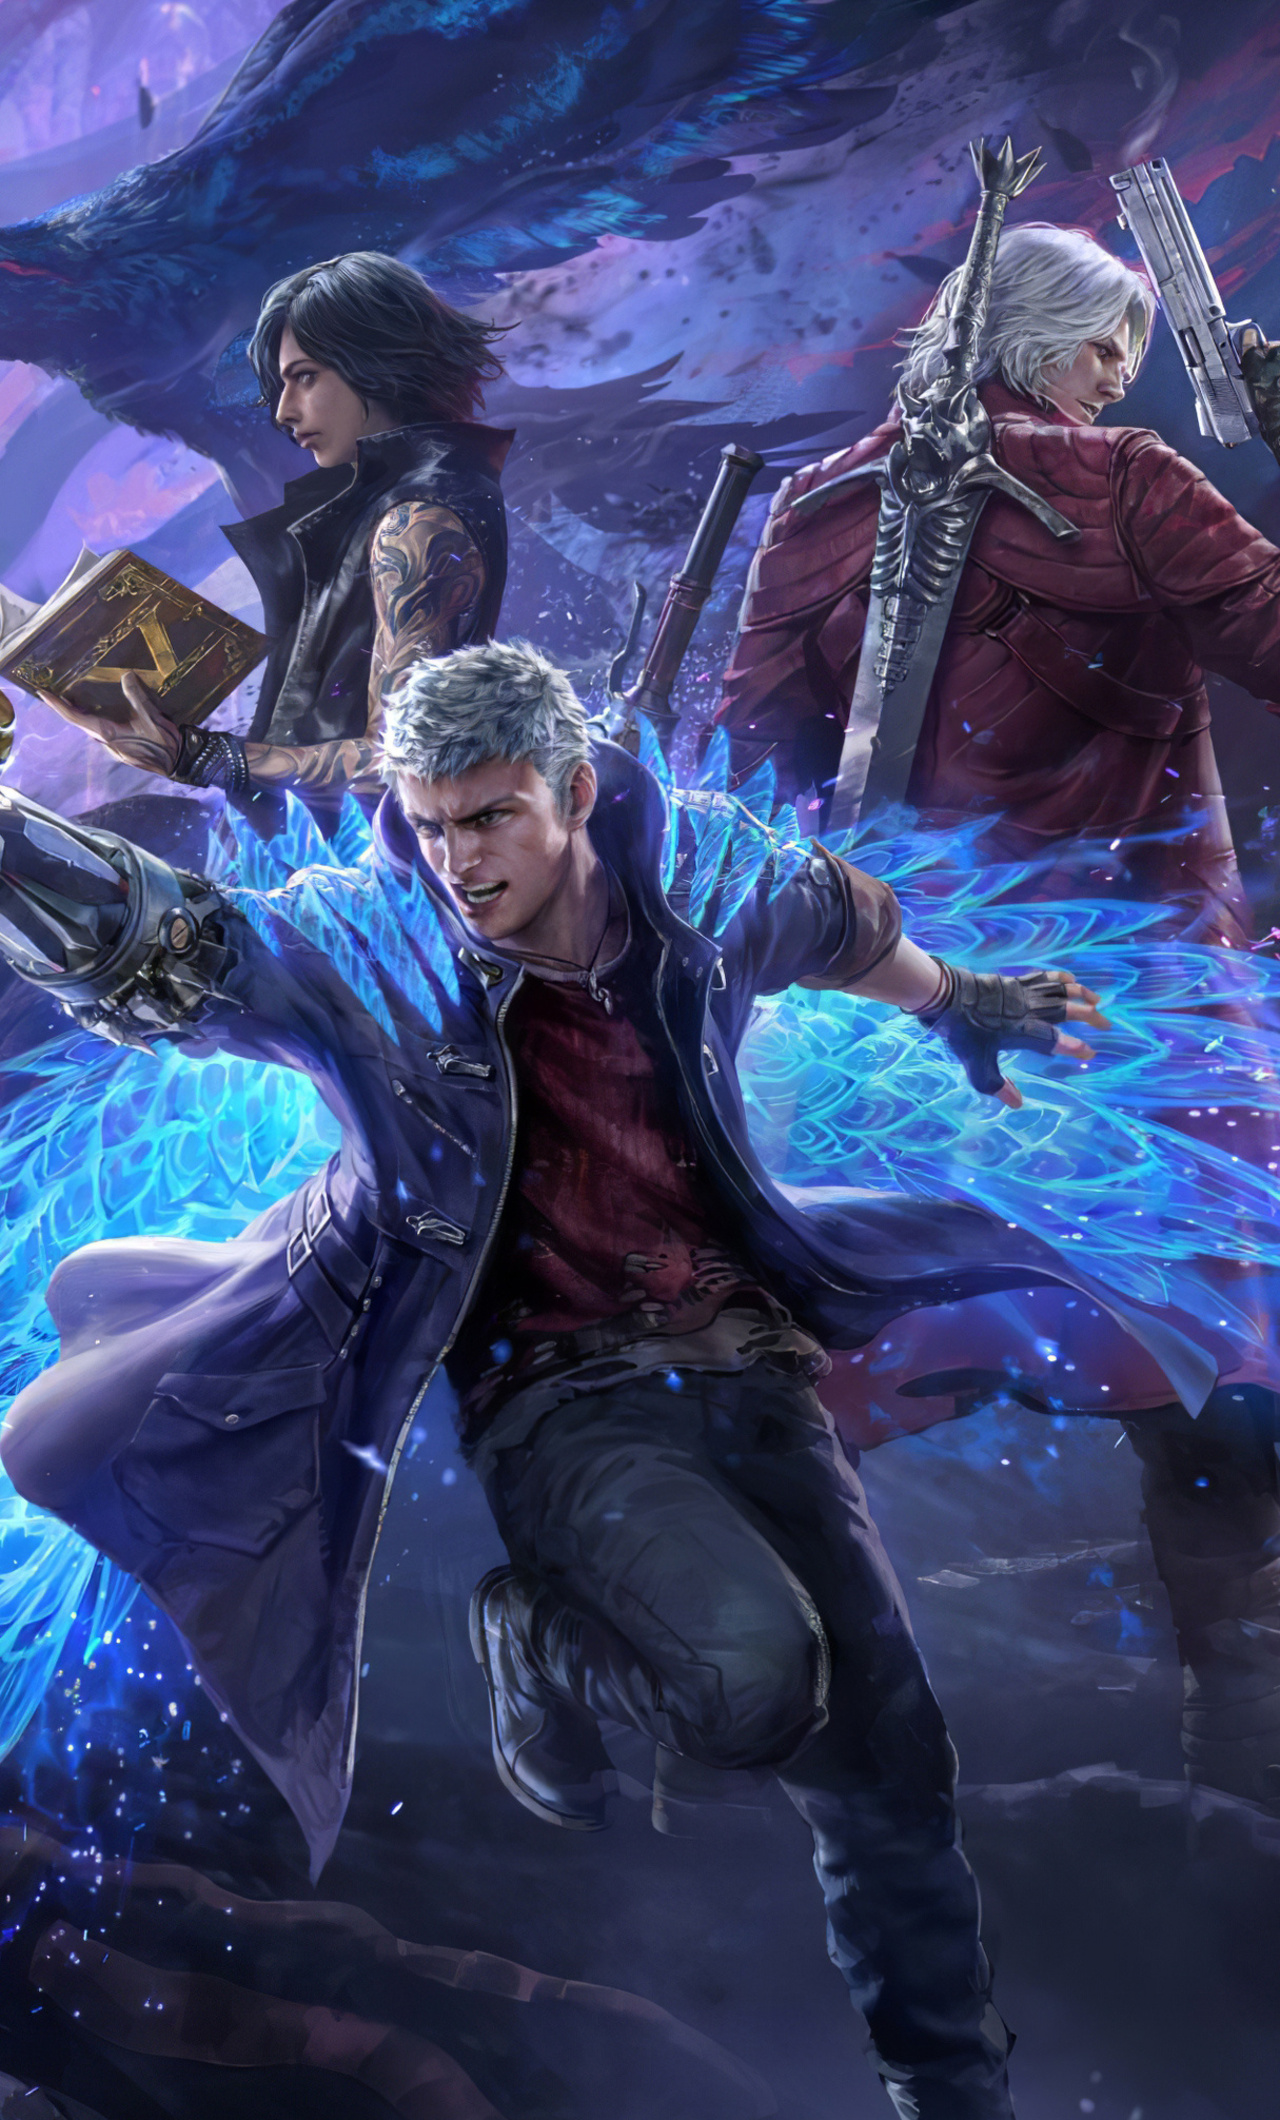 1280x2120 Devil May Cry Pack Teppen 4k Iphone 6 Hd 4k Wallpapers